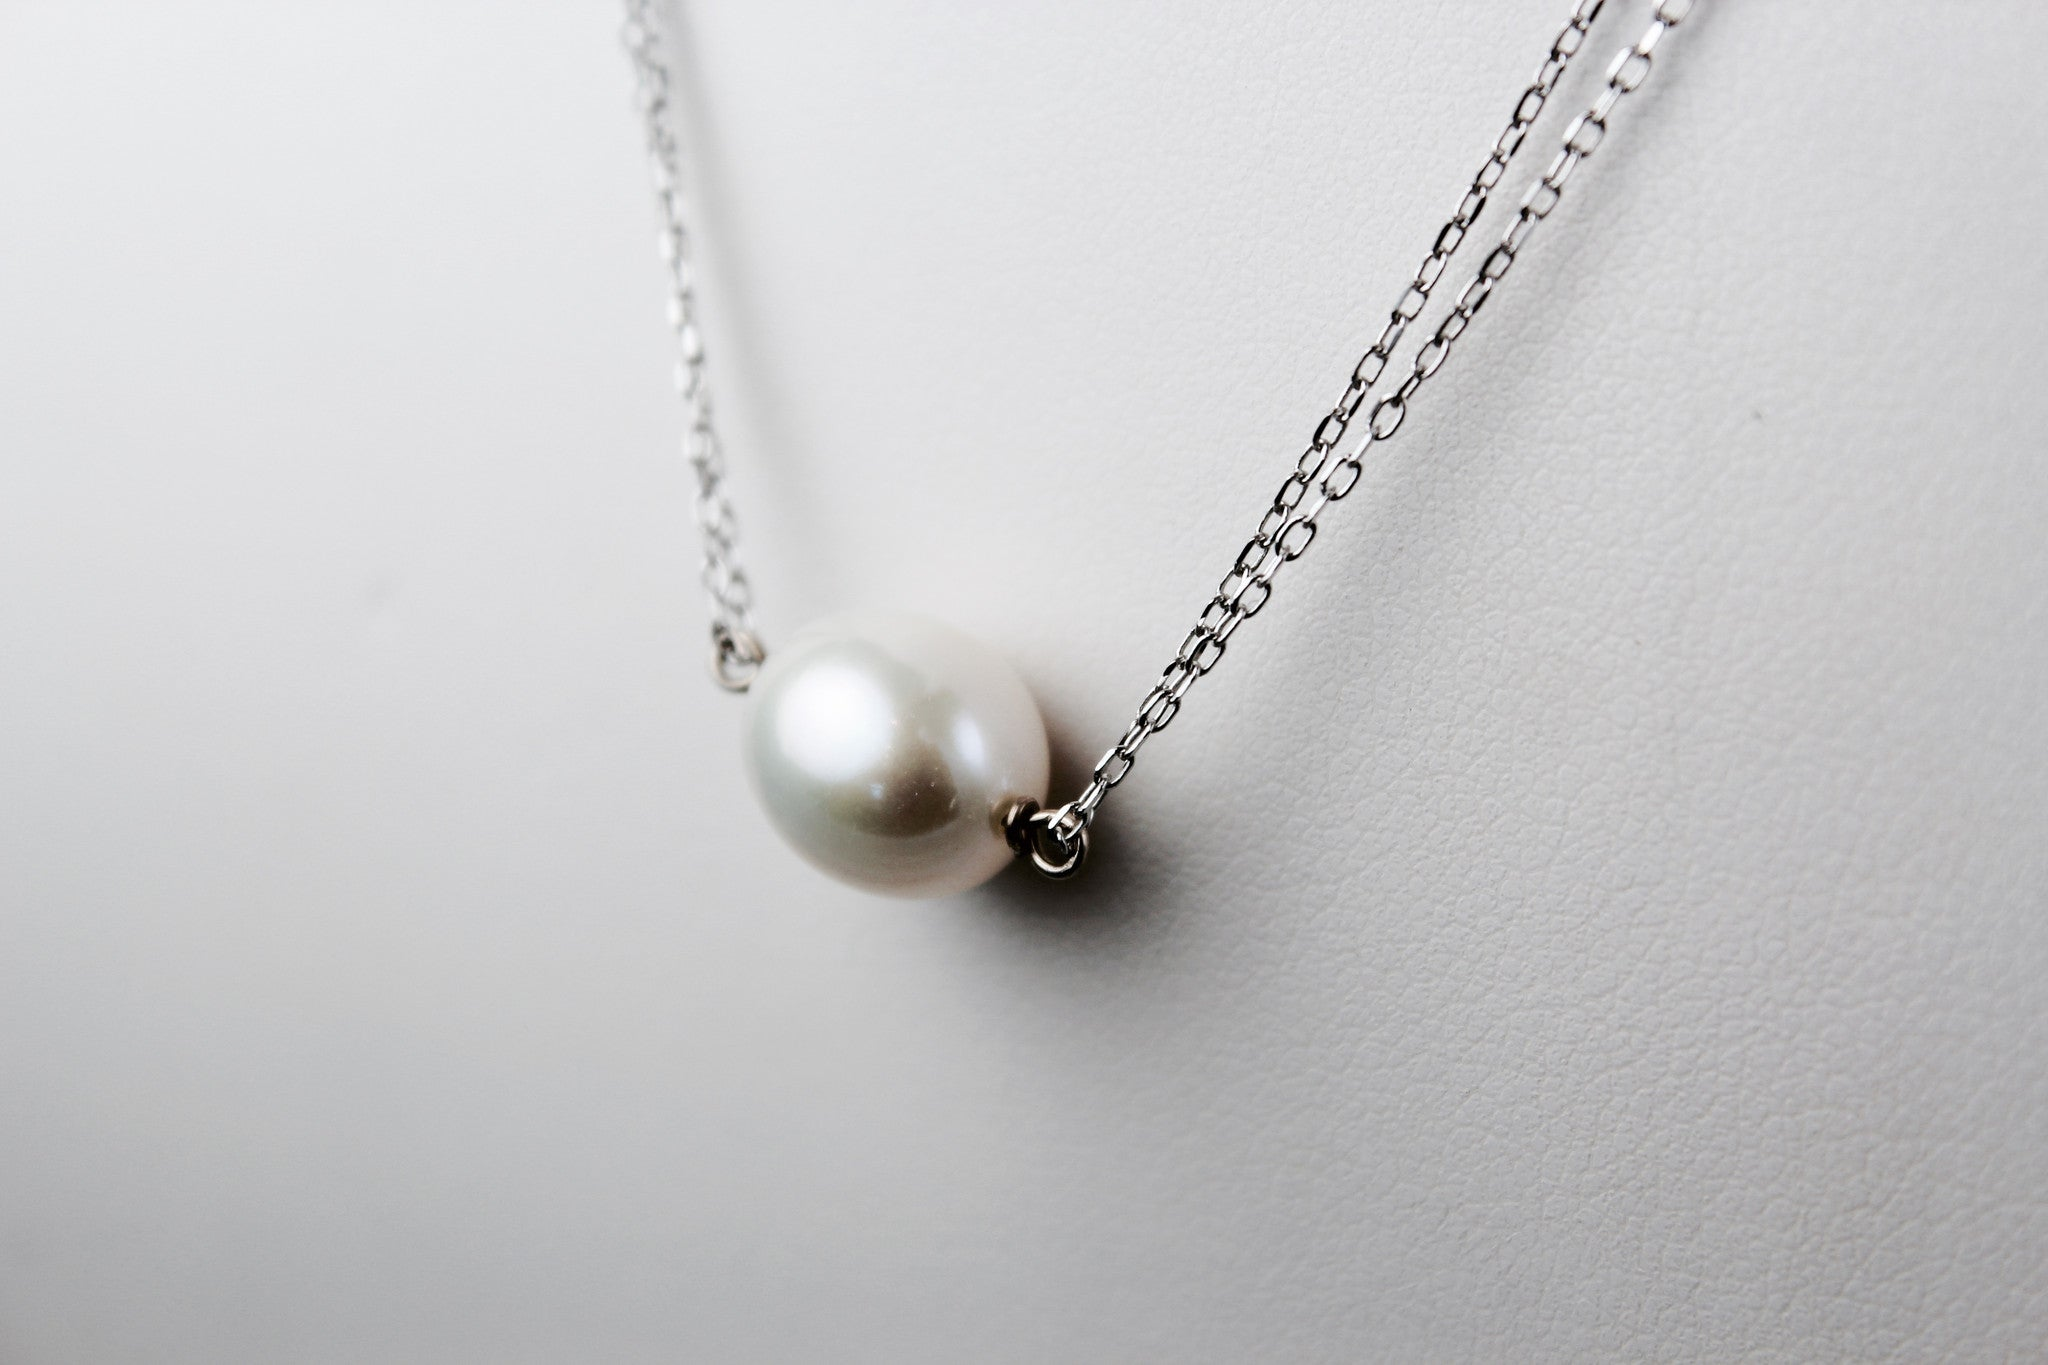 hestia harmony jewels black single pearl products necklace